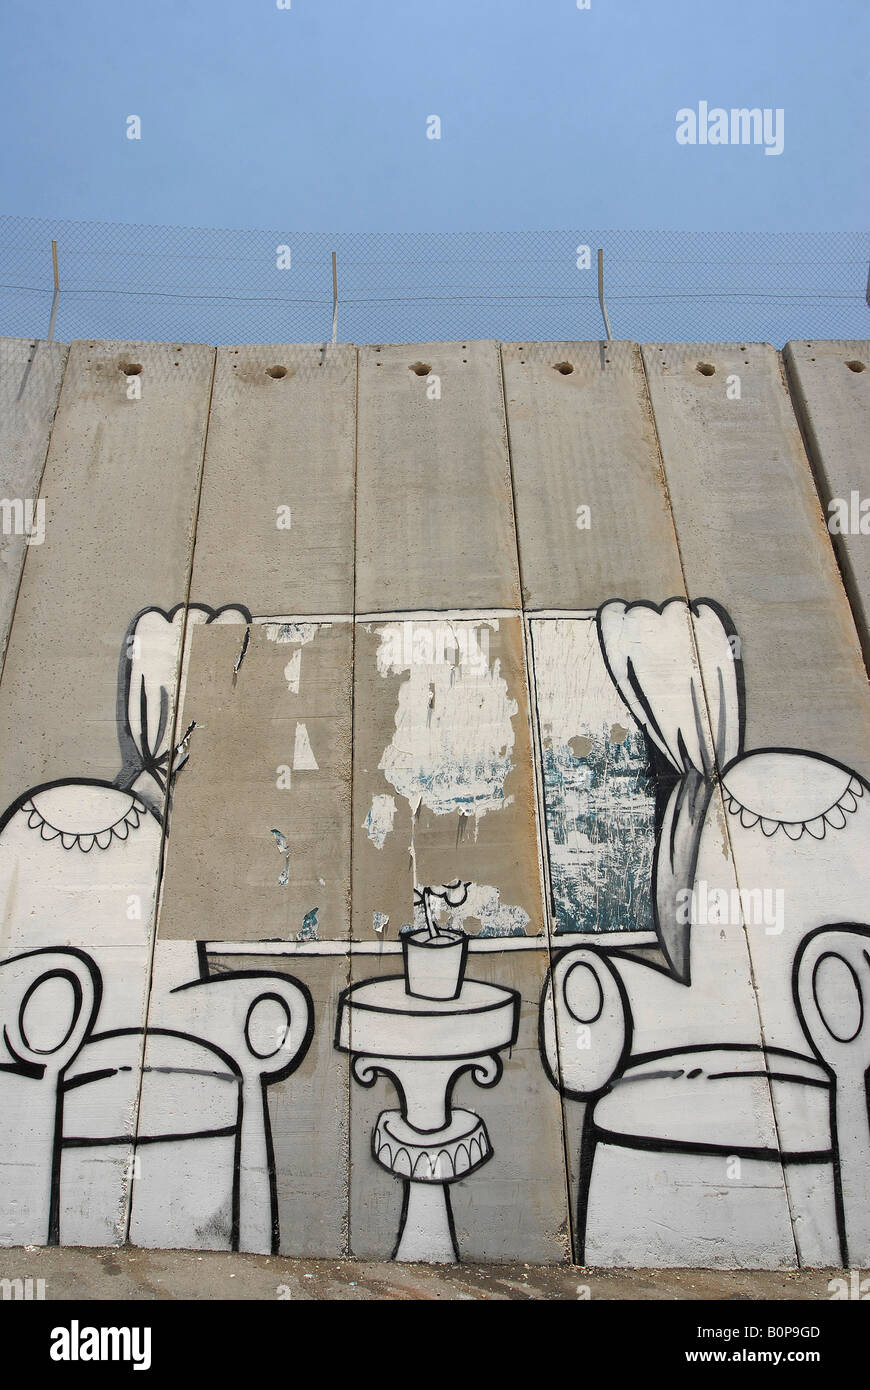 The wall in Bethlehem, Palestine - Stock Image